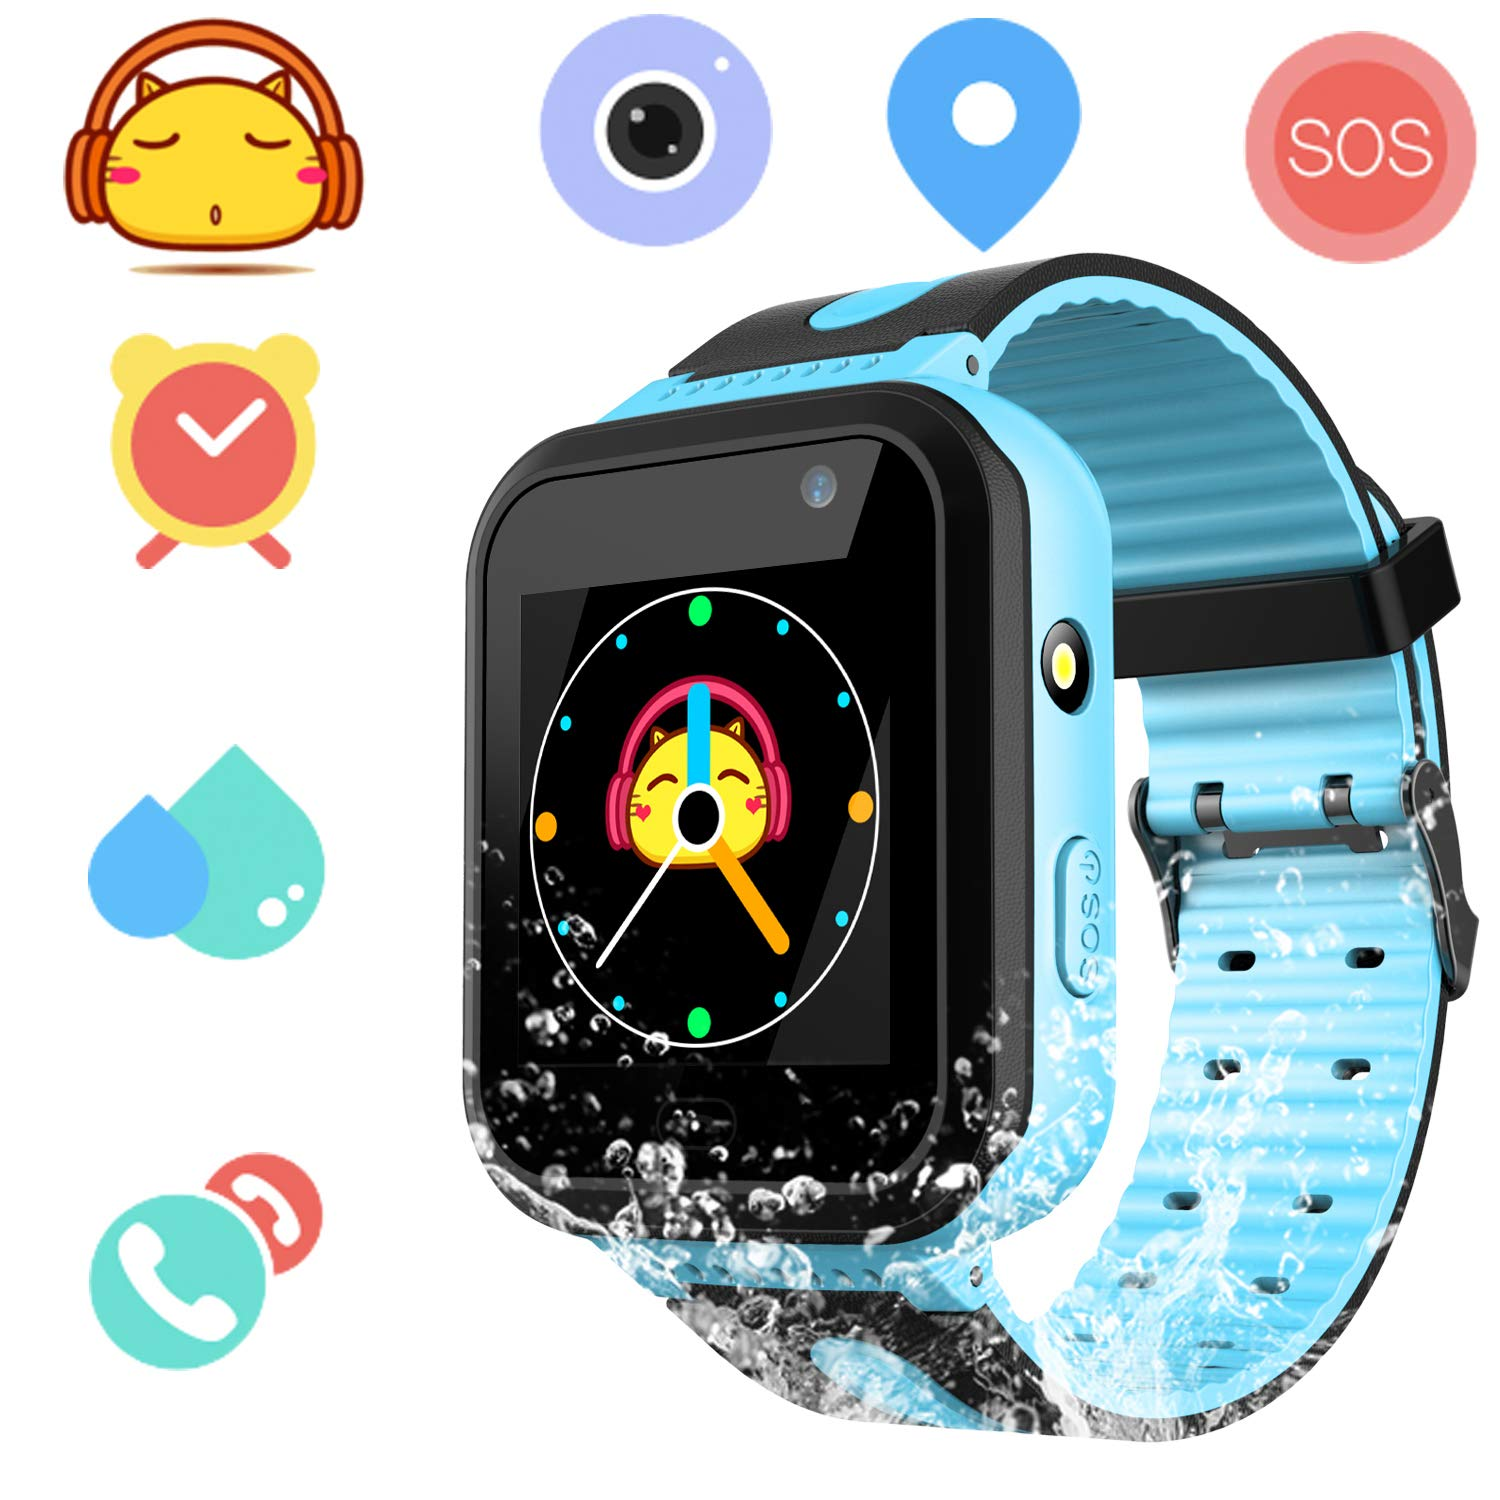 Waterproof Smart Watch Phone for Kids - IP67 Waterproof Watches with SOS Voice Chat Camera Flashlight Alarm Clock Digital Wrist Watch Smartwatch for ...